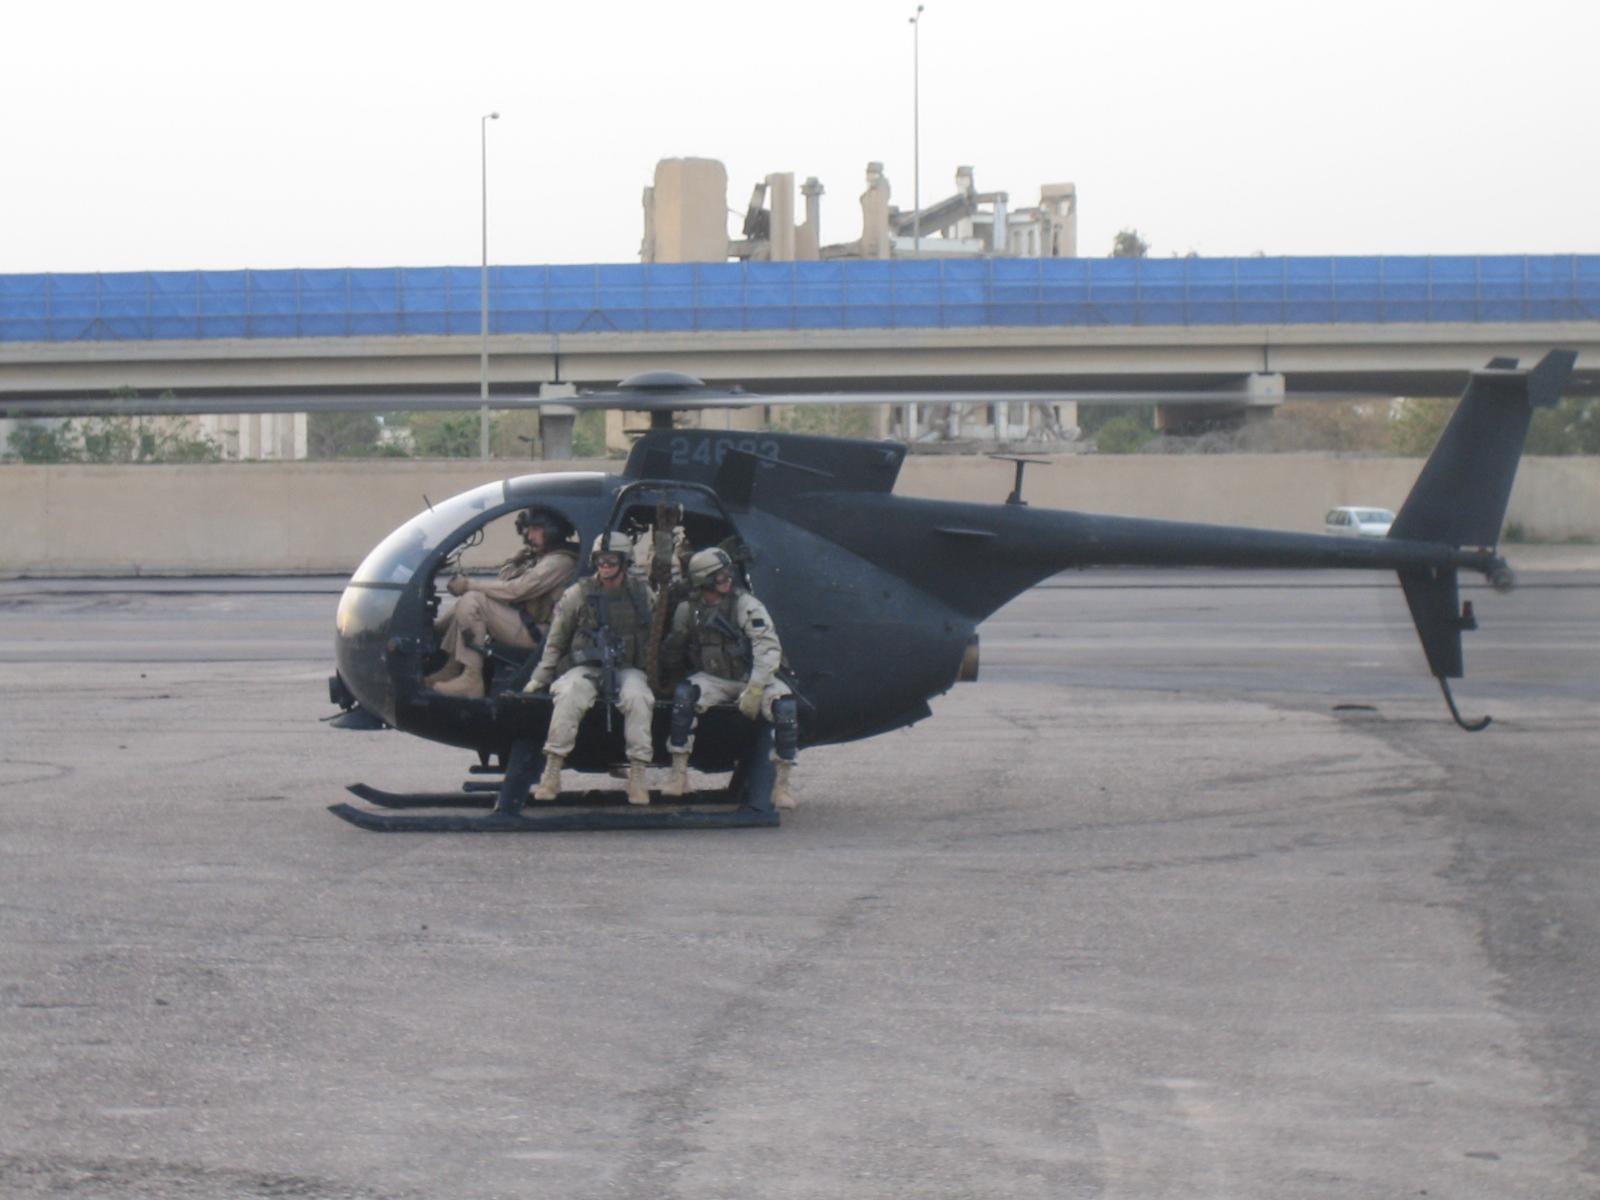 File:OH-6 Cayuse.jpg - Wikimedia Commons